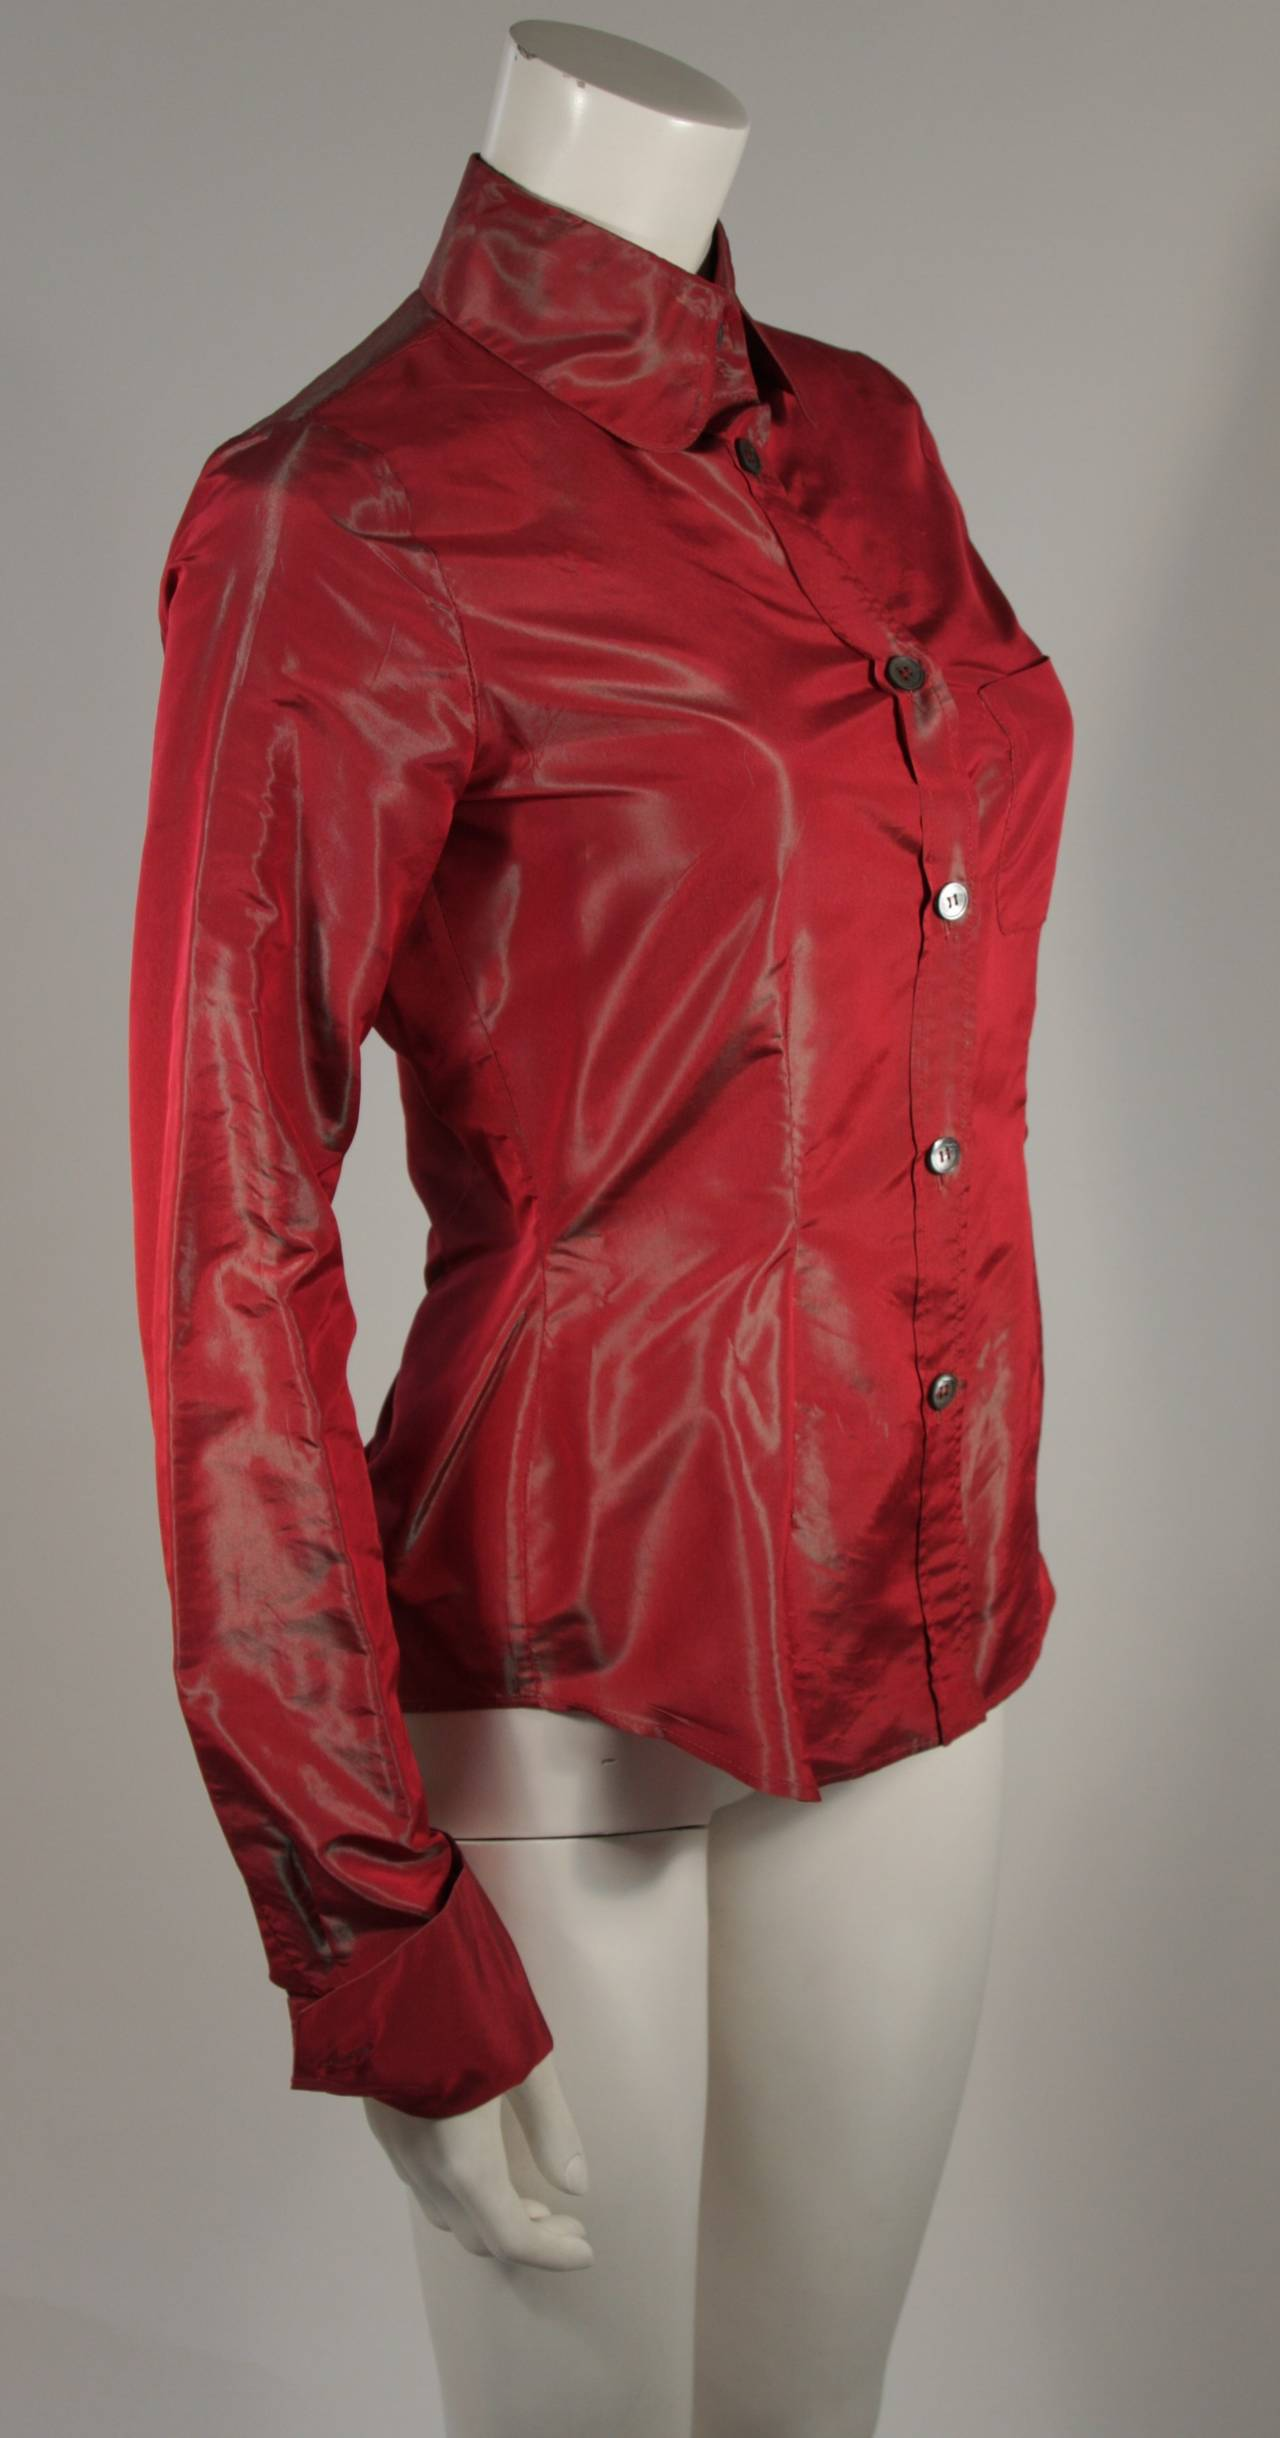 Romeo Gigli Red Iridescent Shirt Size 42 In Excellent Condition For Sale In Los Angeles, CA